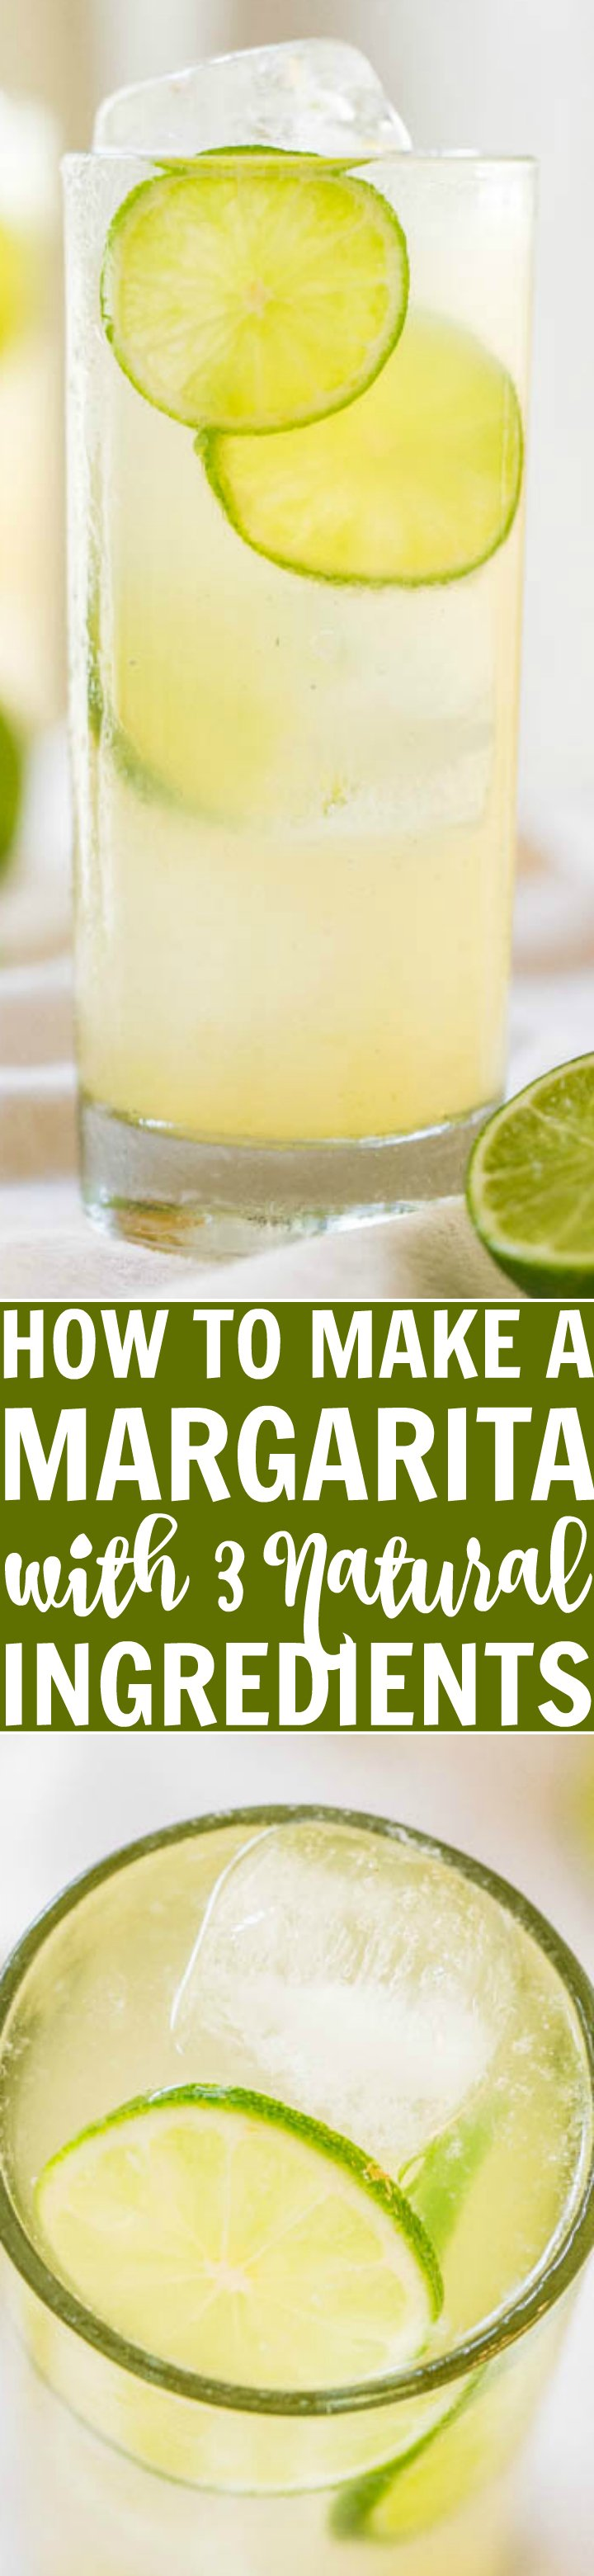 How to make a margarita with just three natural ingredients!! Nothing fake, neon green, and no sugary chemicals! This is the best homemade margarita recipe I've tried and it's the easiest!!